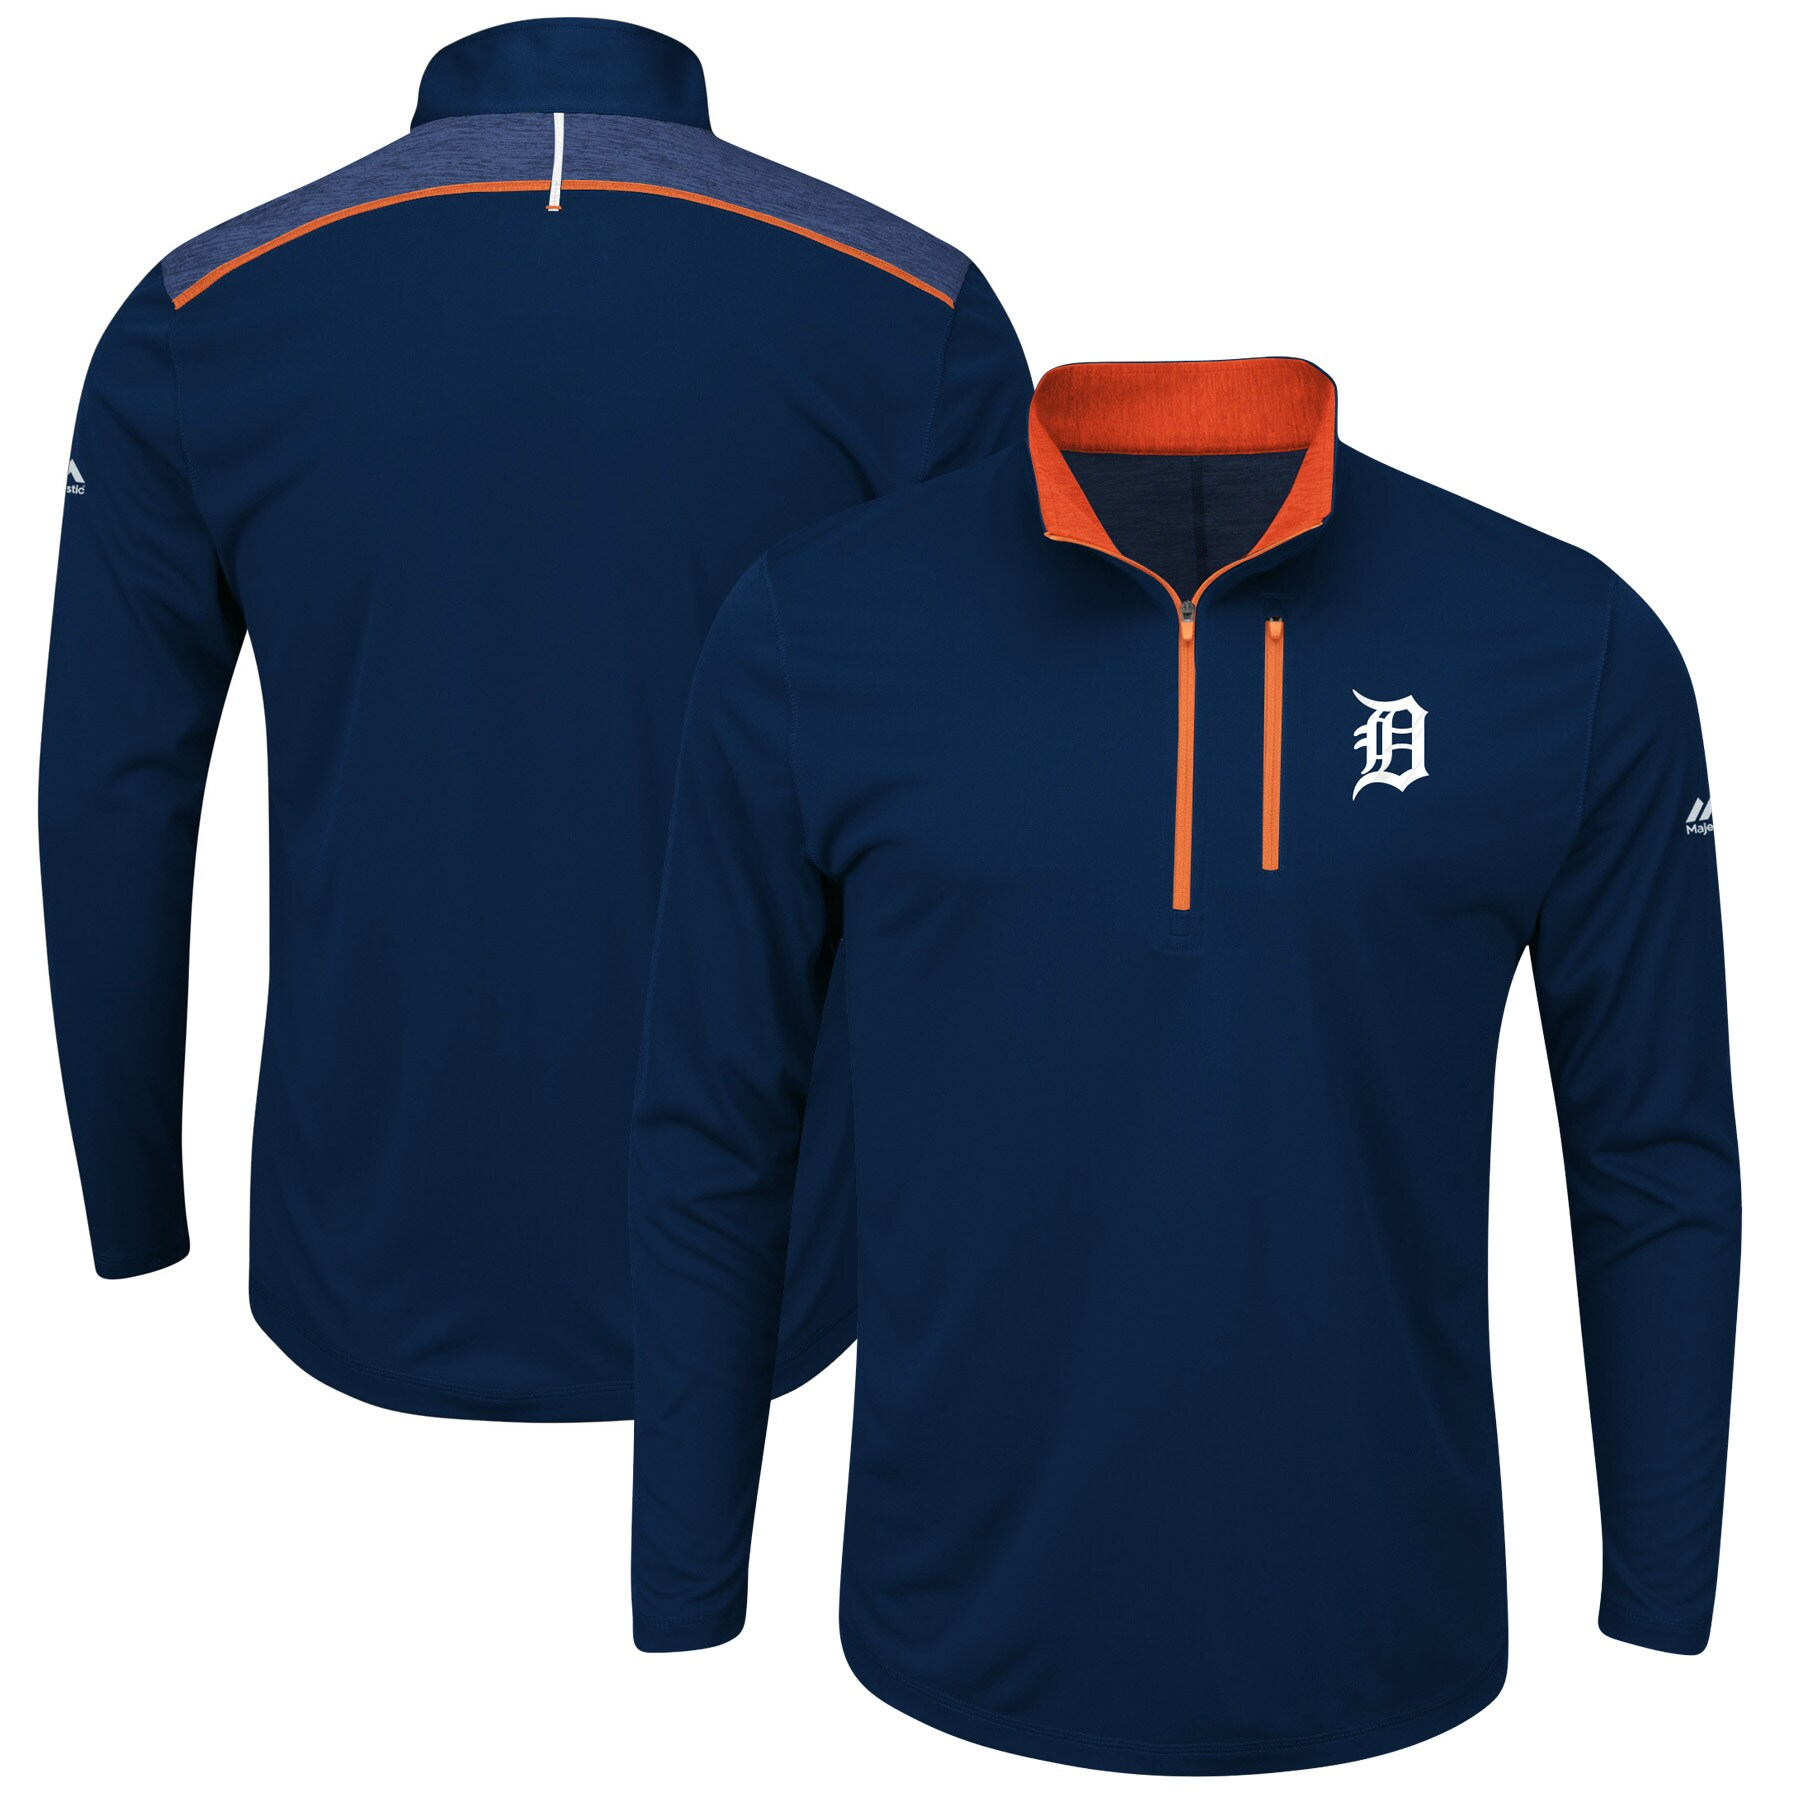 Detroit Tigers Majestic Big & Tall 643 Half-Zip Pullover Jacket - Navy